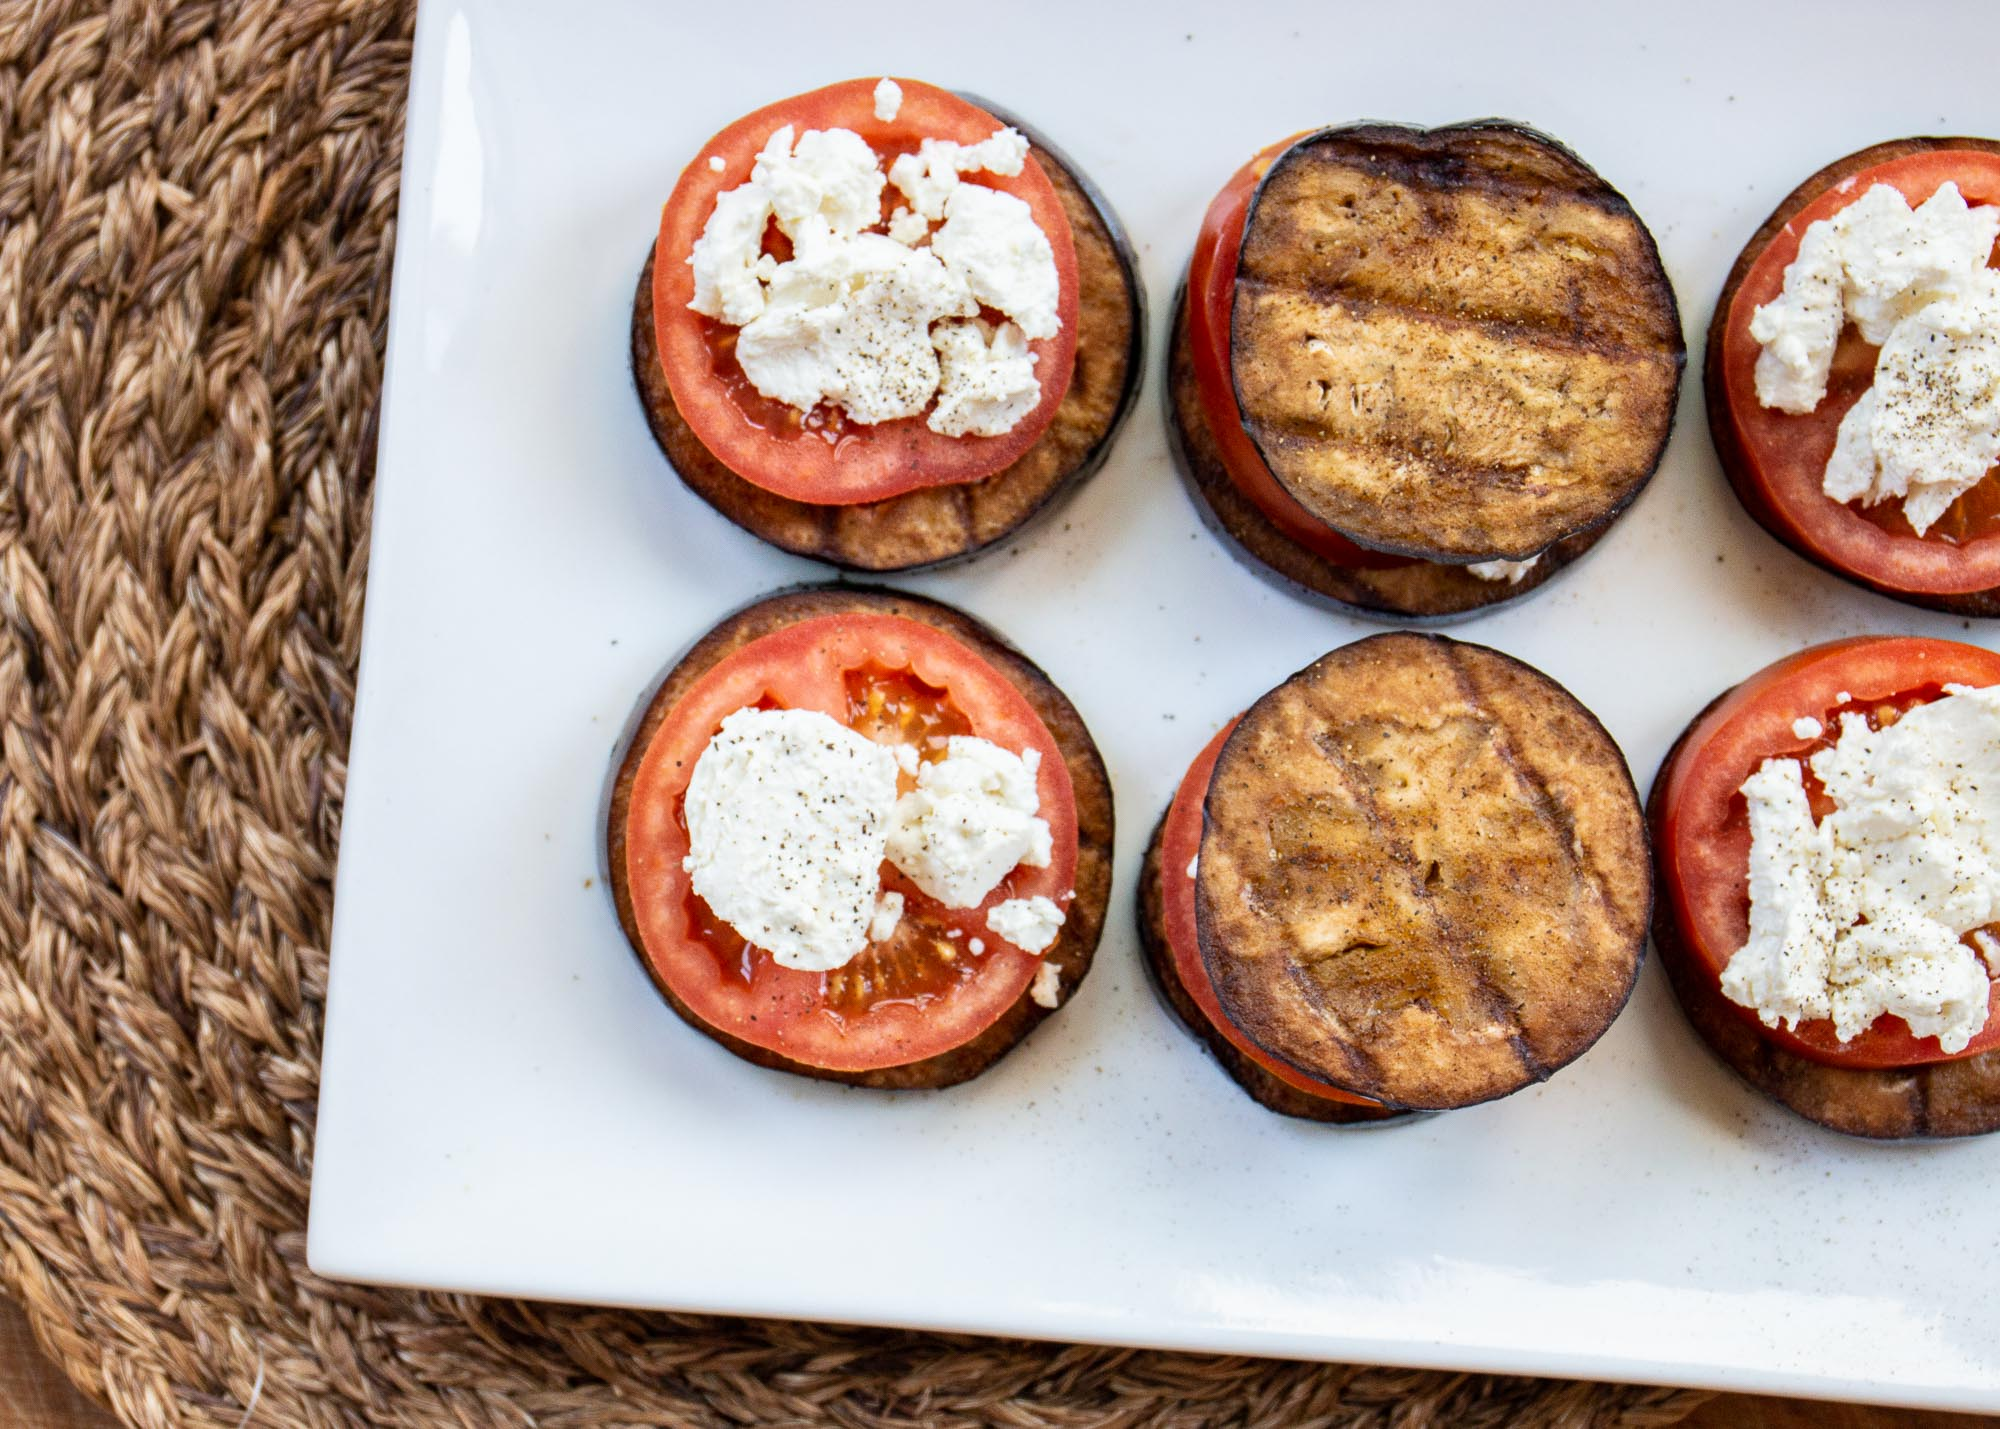 """These vegetarian stacks of grilled eggplant, tomatoes, and goat cheese, make for """"a delicious, no fuss appetizer,"""" says recipe submitter Bubba's Mom. We think it'll also go well over a grilled crostini topped with pesto."""